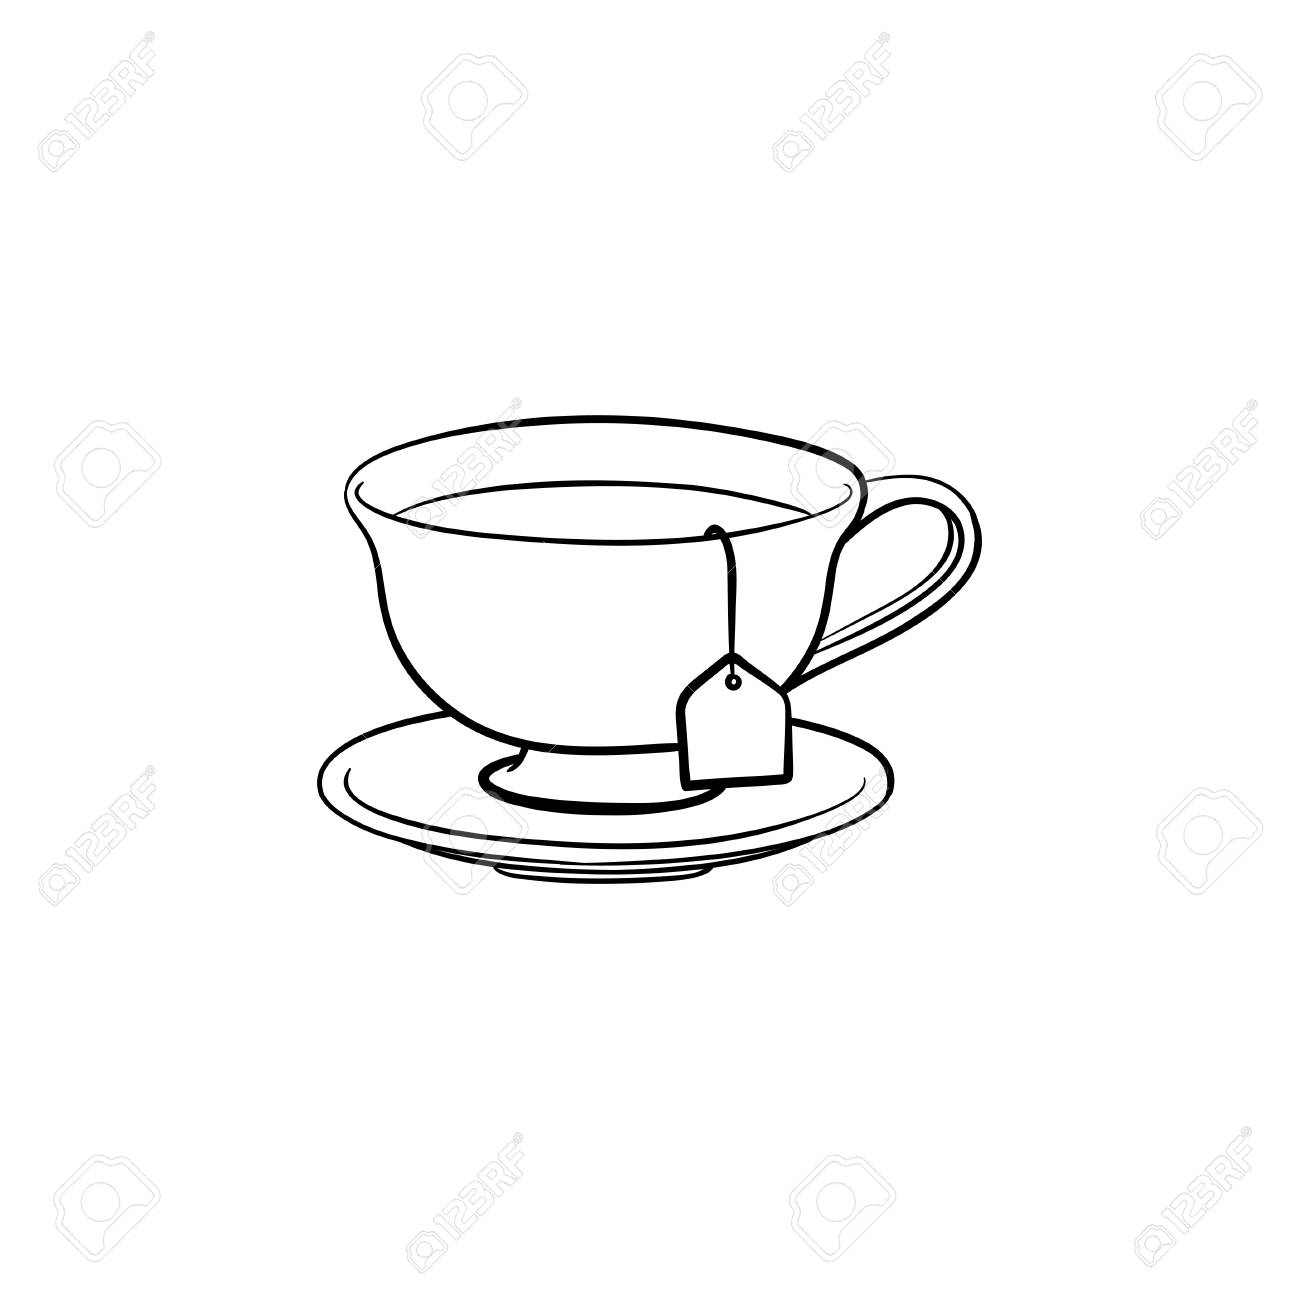 Cup With Tea Bag Hand Drawn Outline Doodle Icon Hot Drink Royalty Free Cliparts Vectors And Stock Illustration Image 100015982